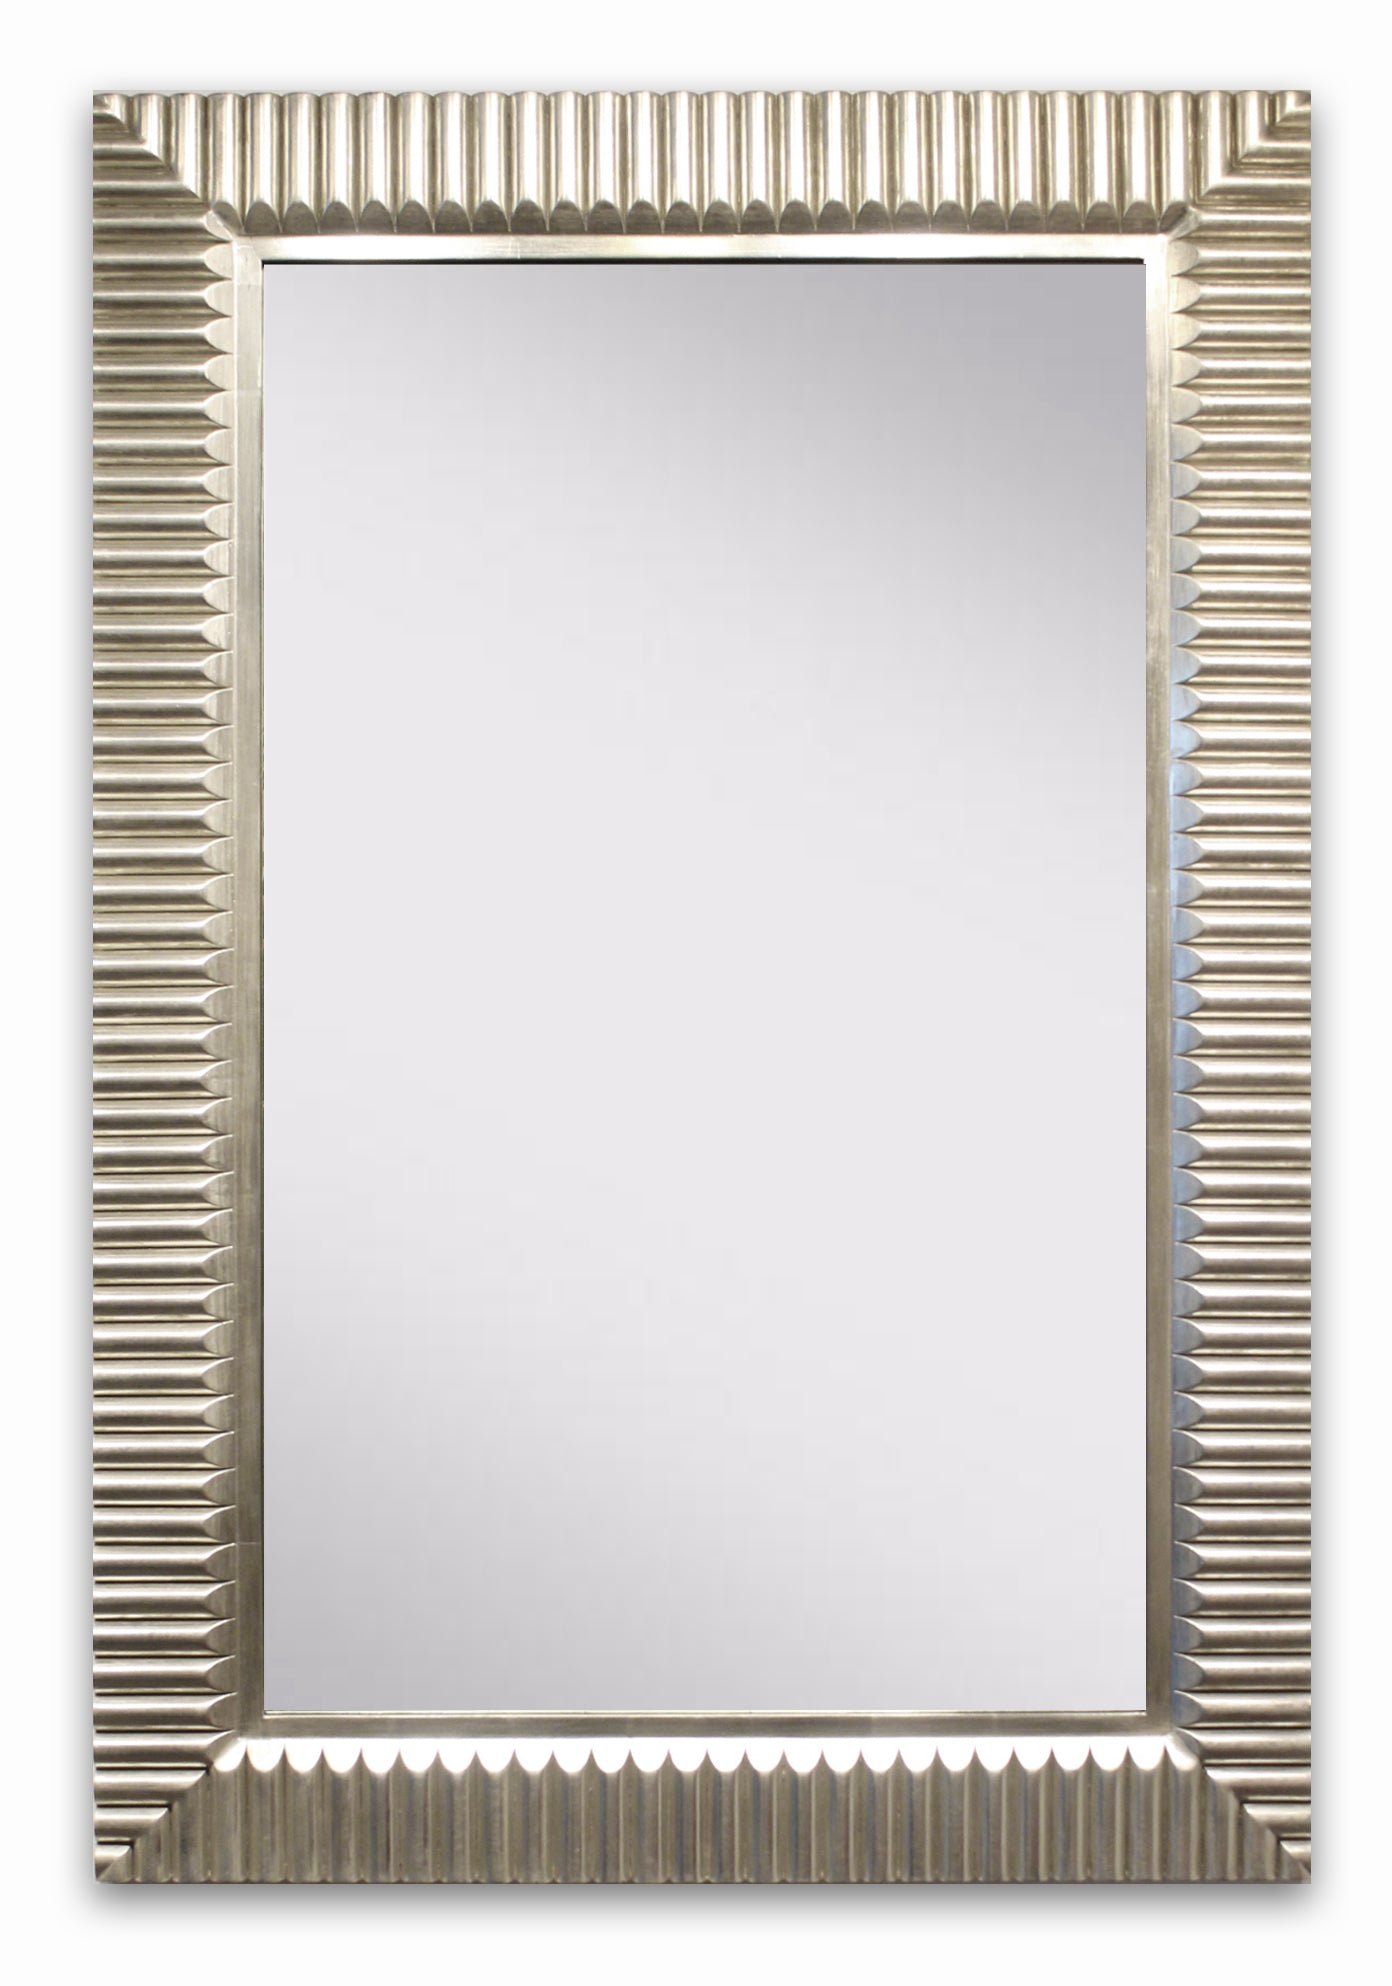 Convex Corrugated Mirror